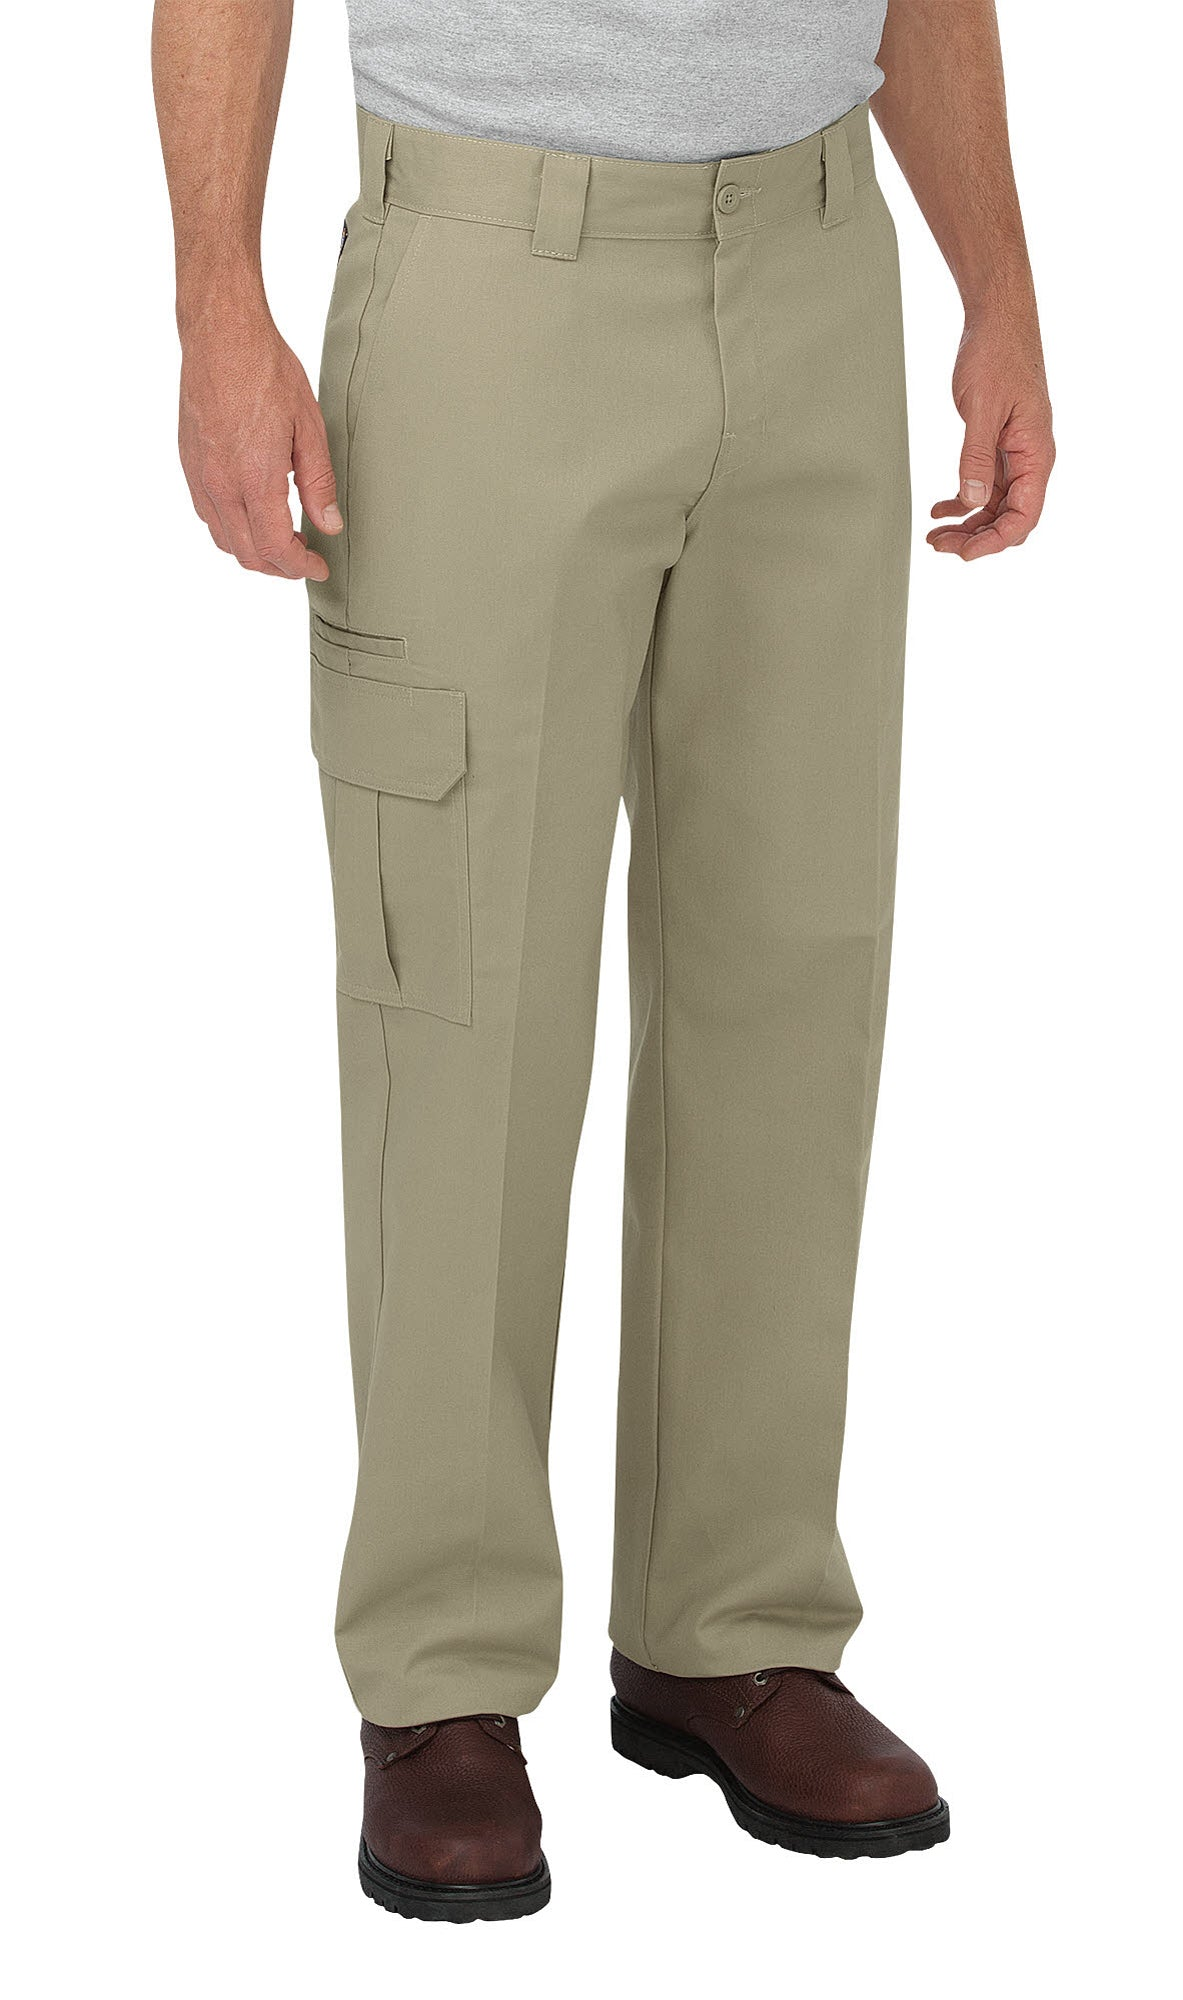 abb9f527409 Dickies Mens Desert Sand Flex Relaxed Fit Straight Leg Cargo Pants ...